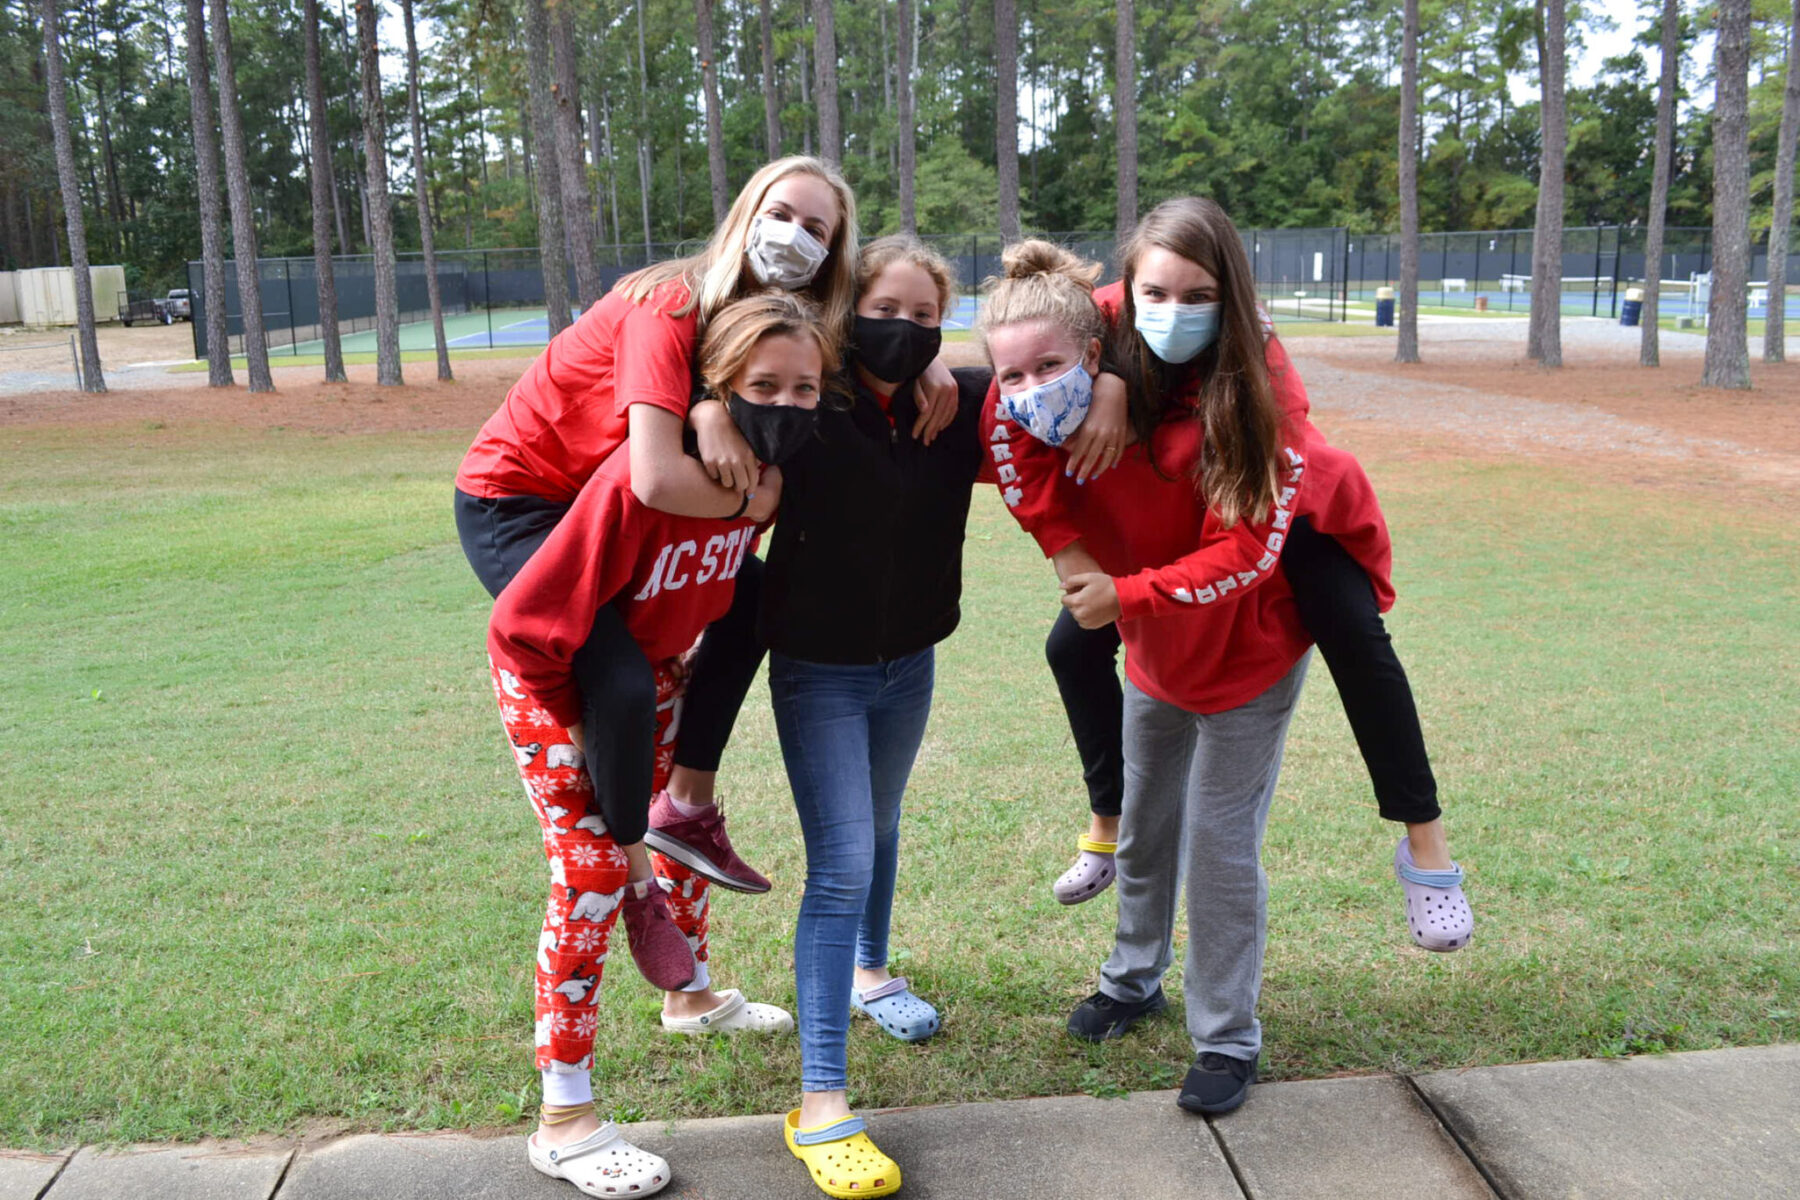 5 students in holiday pjs on the FA campus